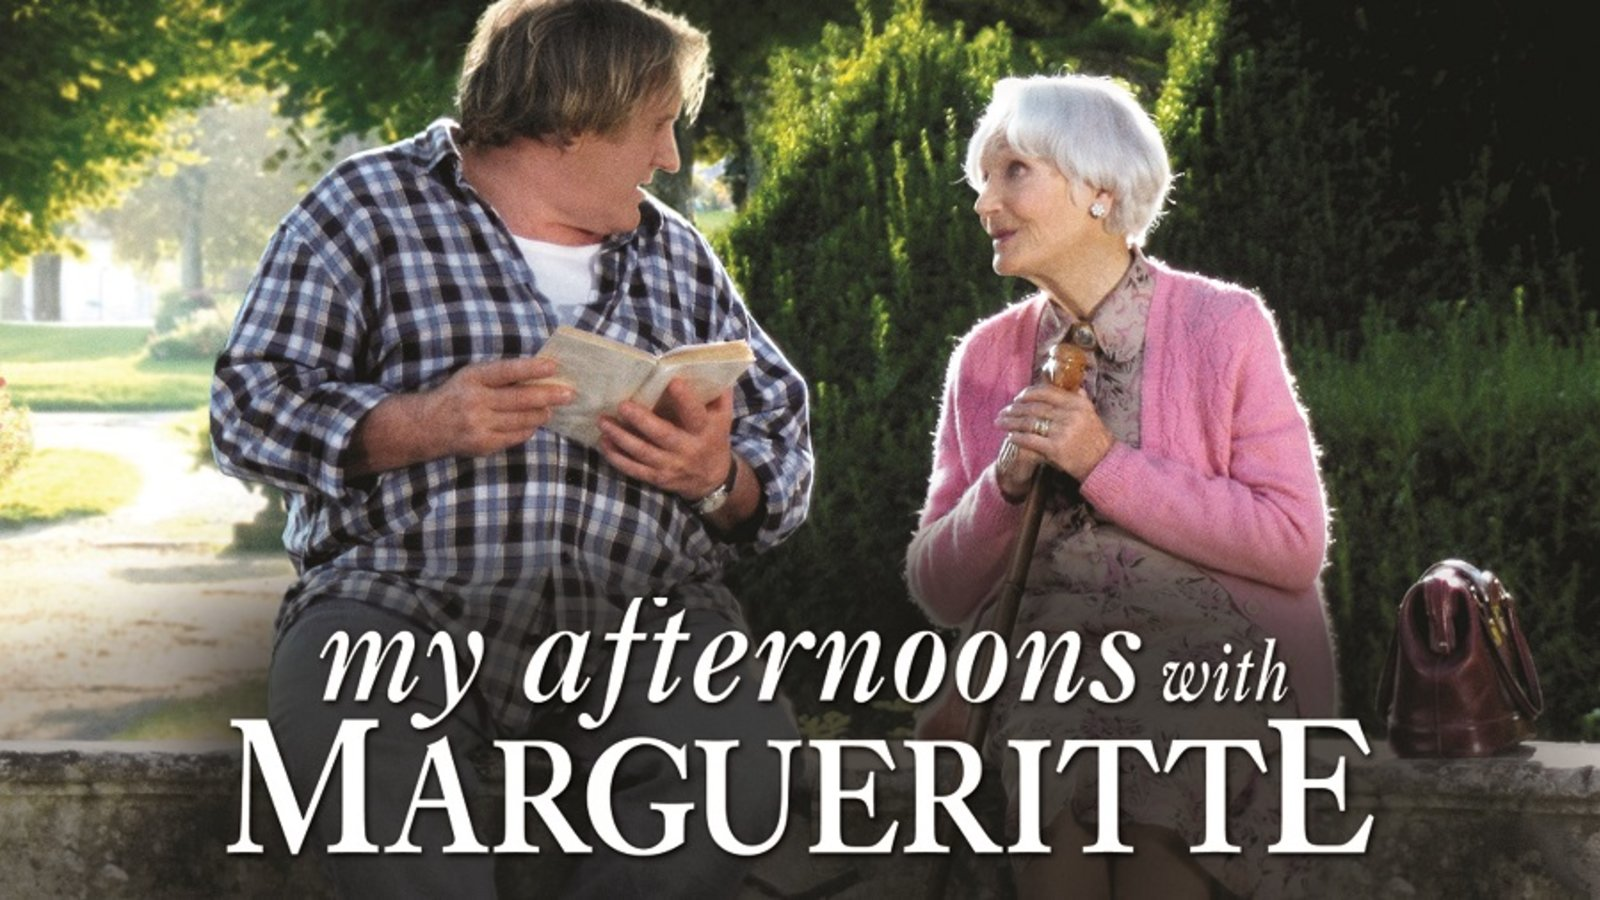 My Afternoons with Margueritte - La tête en friche